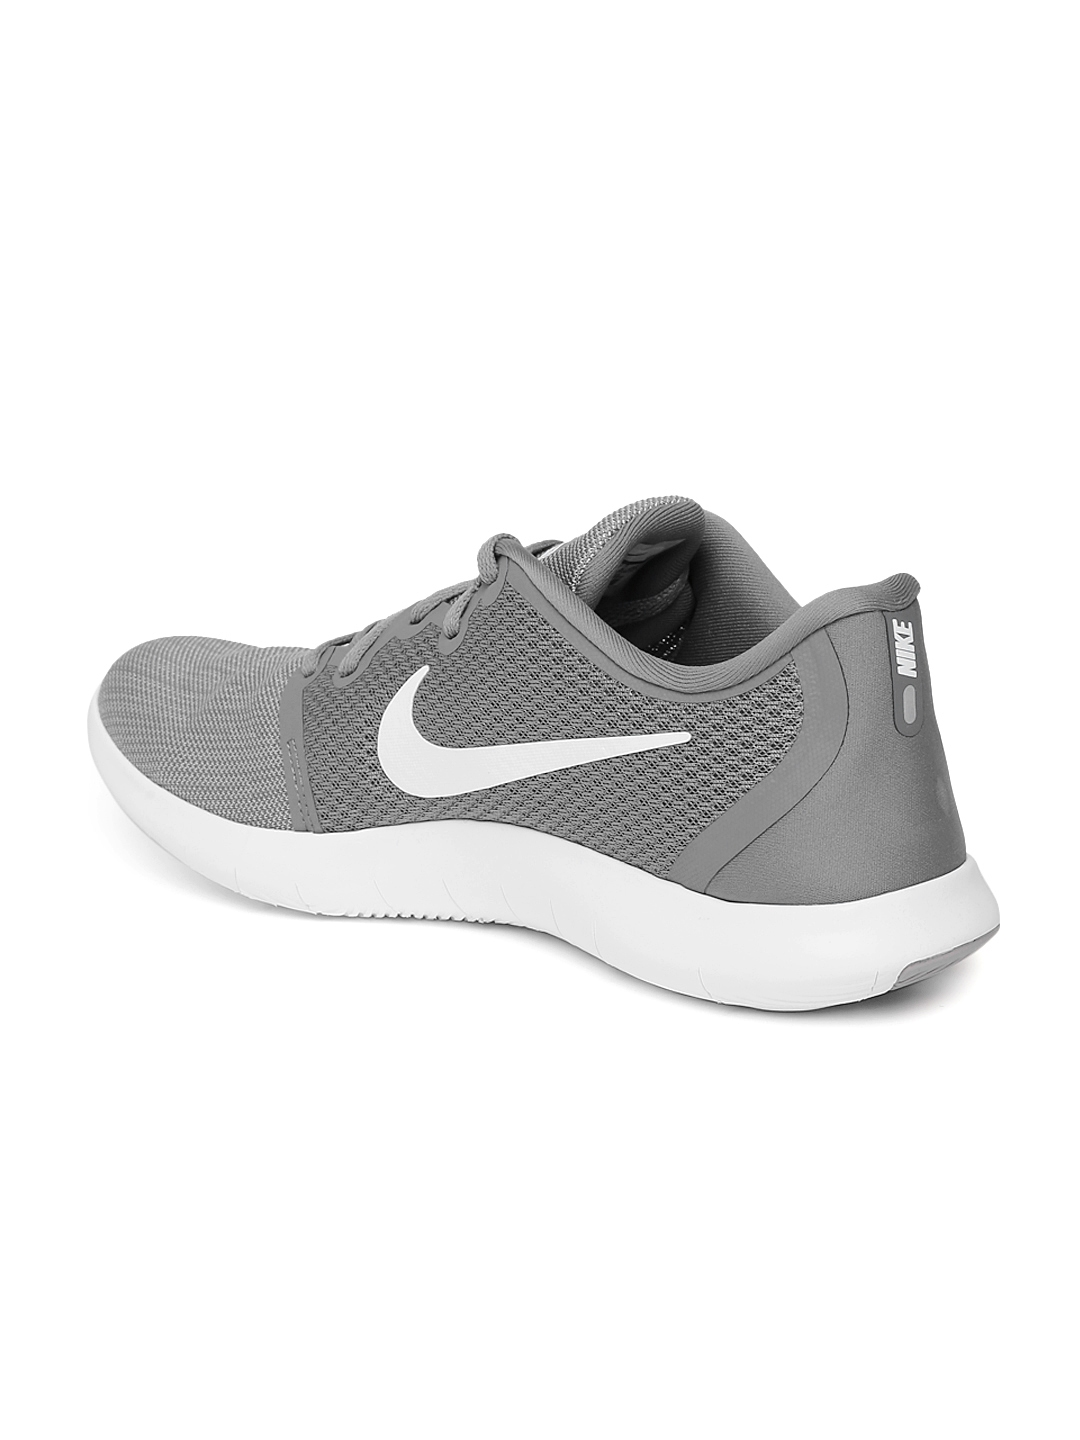 d15c9f9873a86 Buy Nike Men Grey Solid FLEX CONTACT 2 Running Shoes - Sports Shoes ...